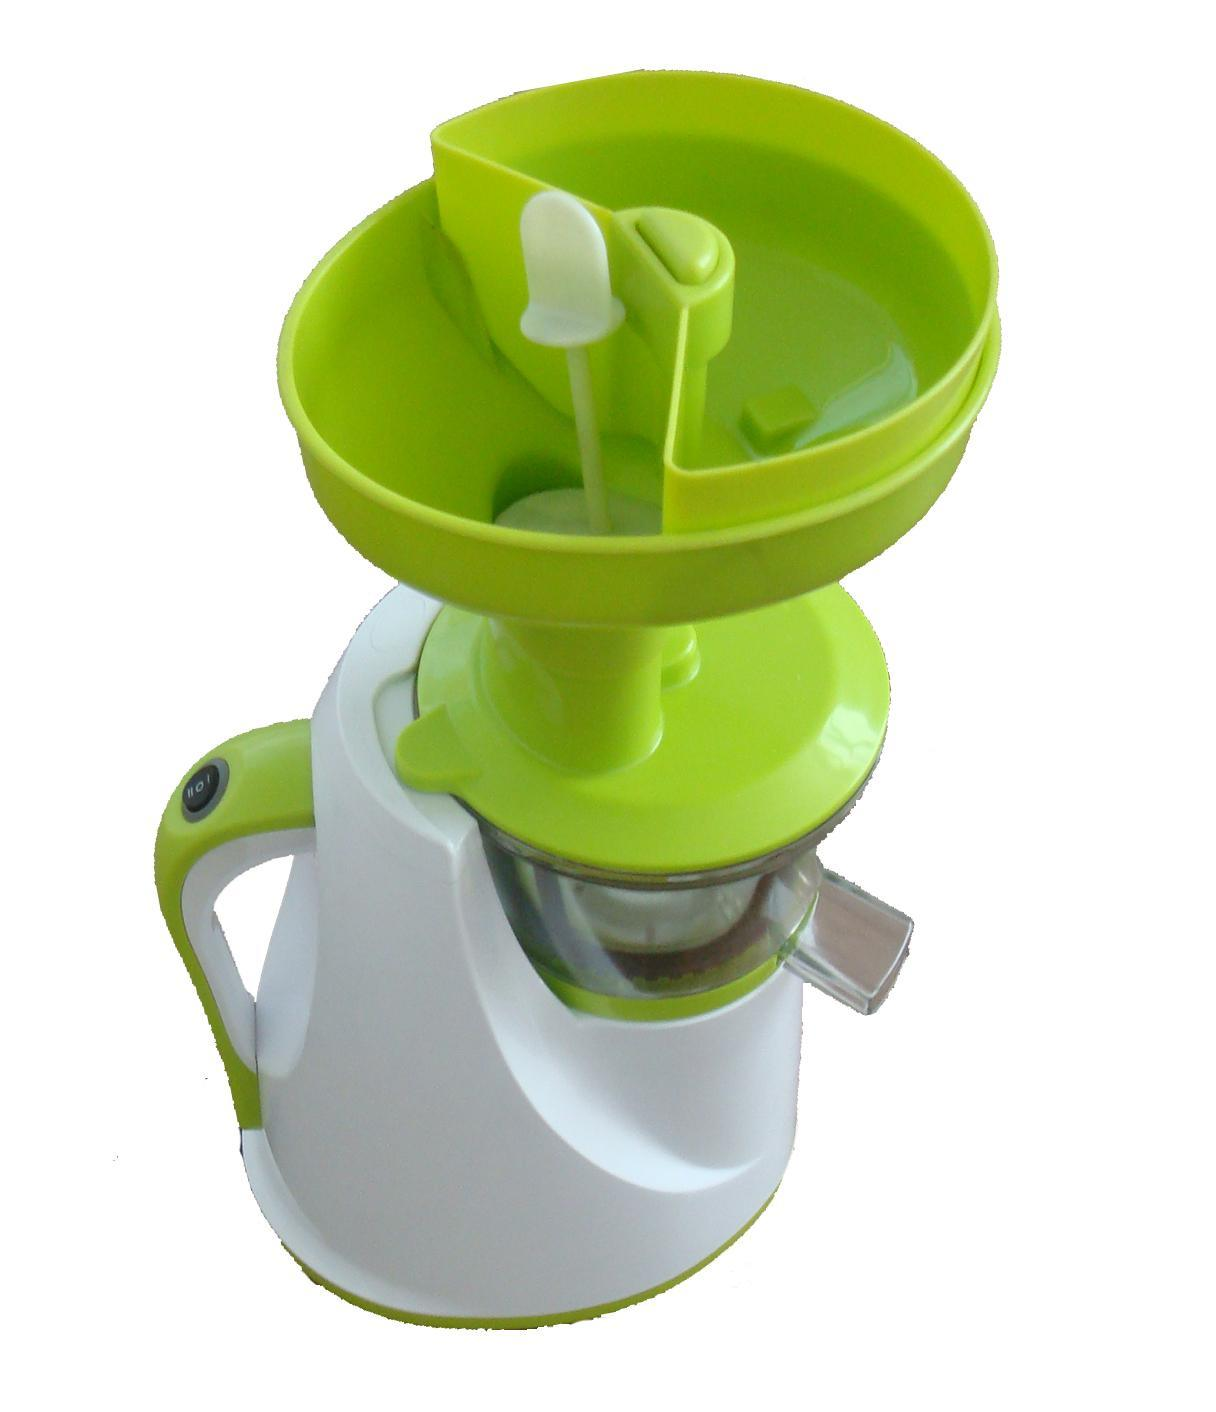 Slow Juicer From China : China Slow Juicer- various Function - China Juice and Residue Separation Juicer, Slow Juicer